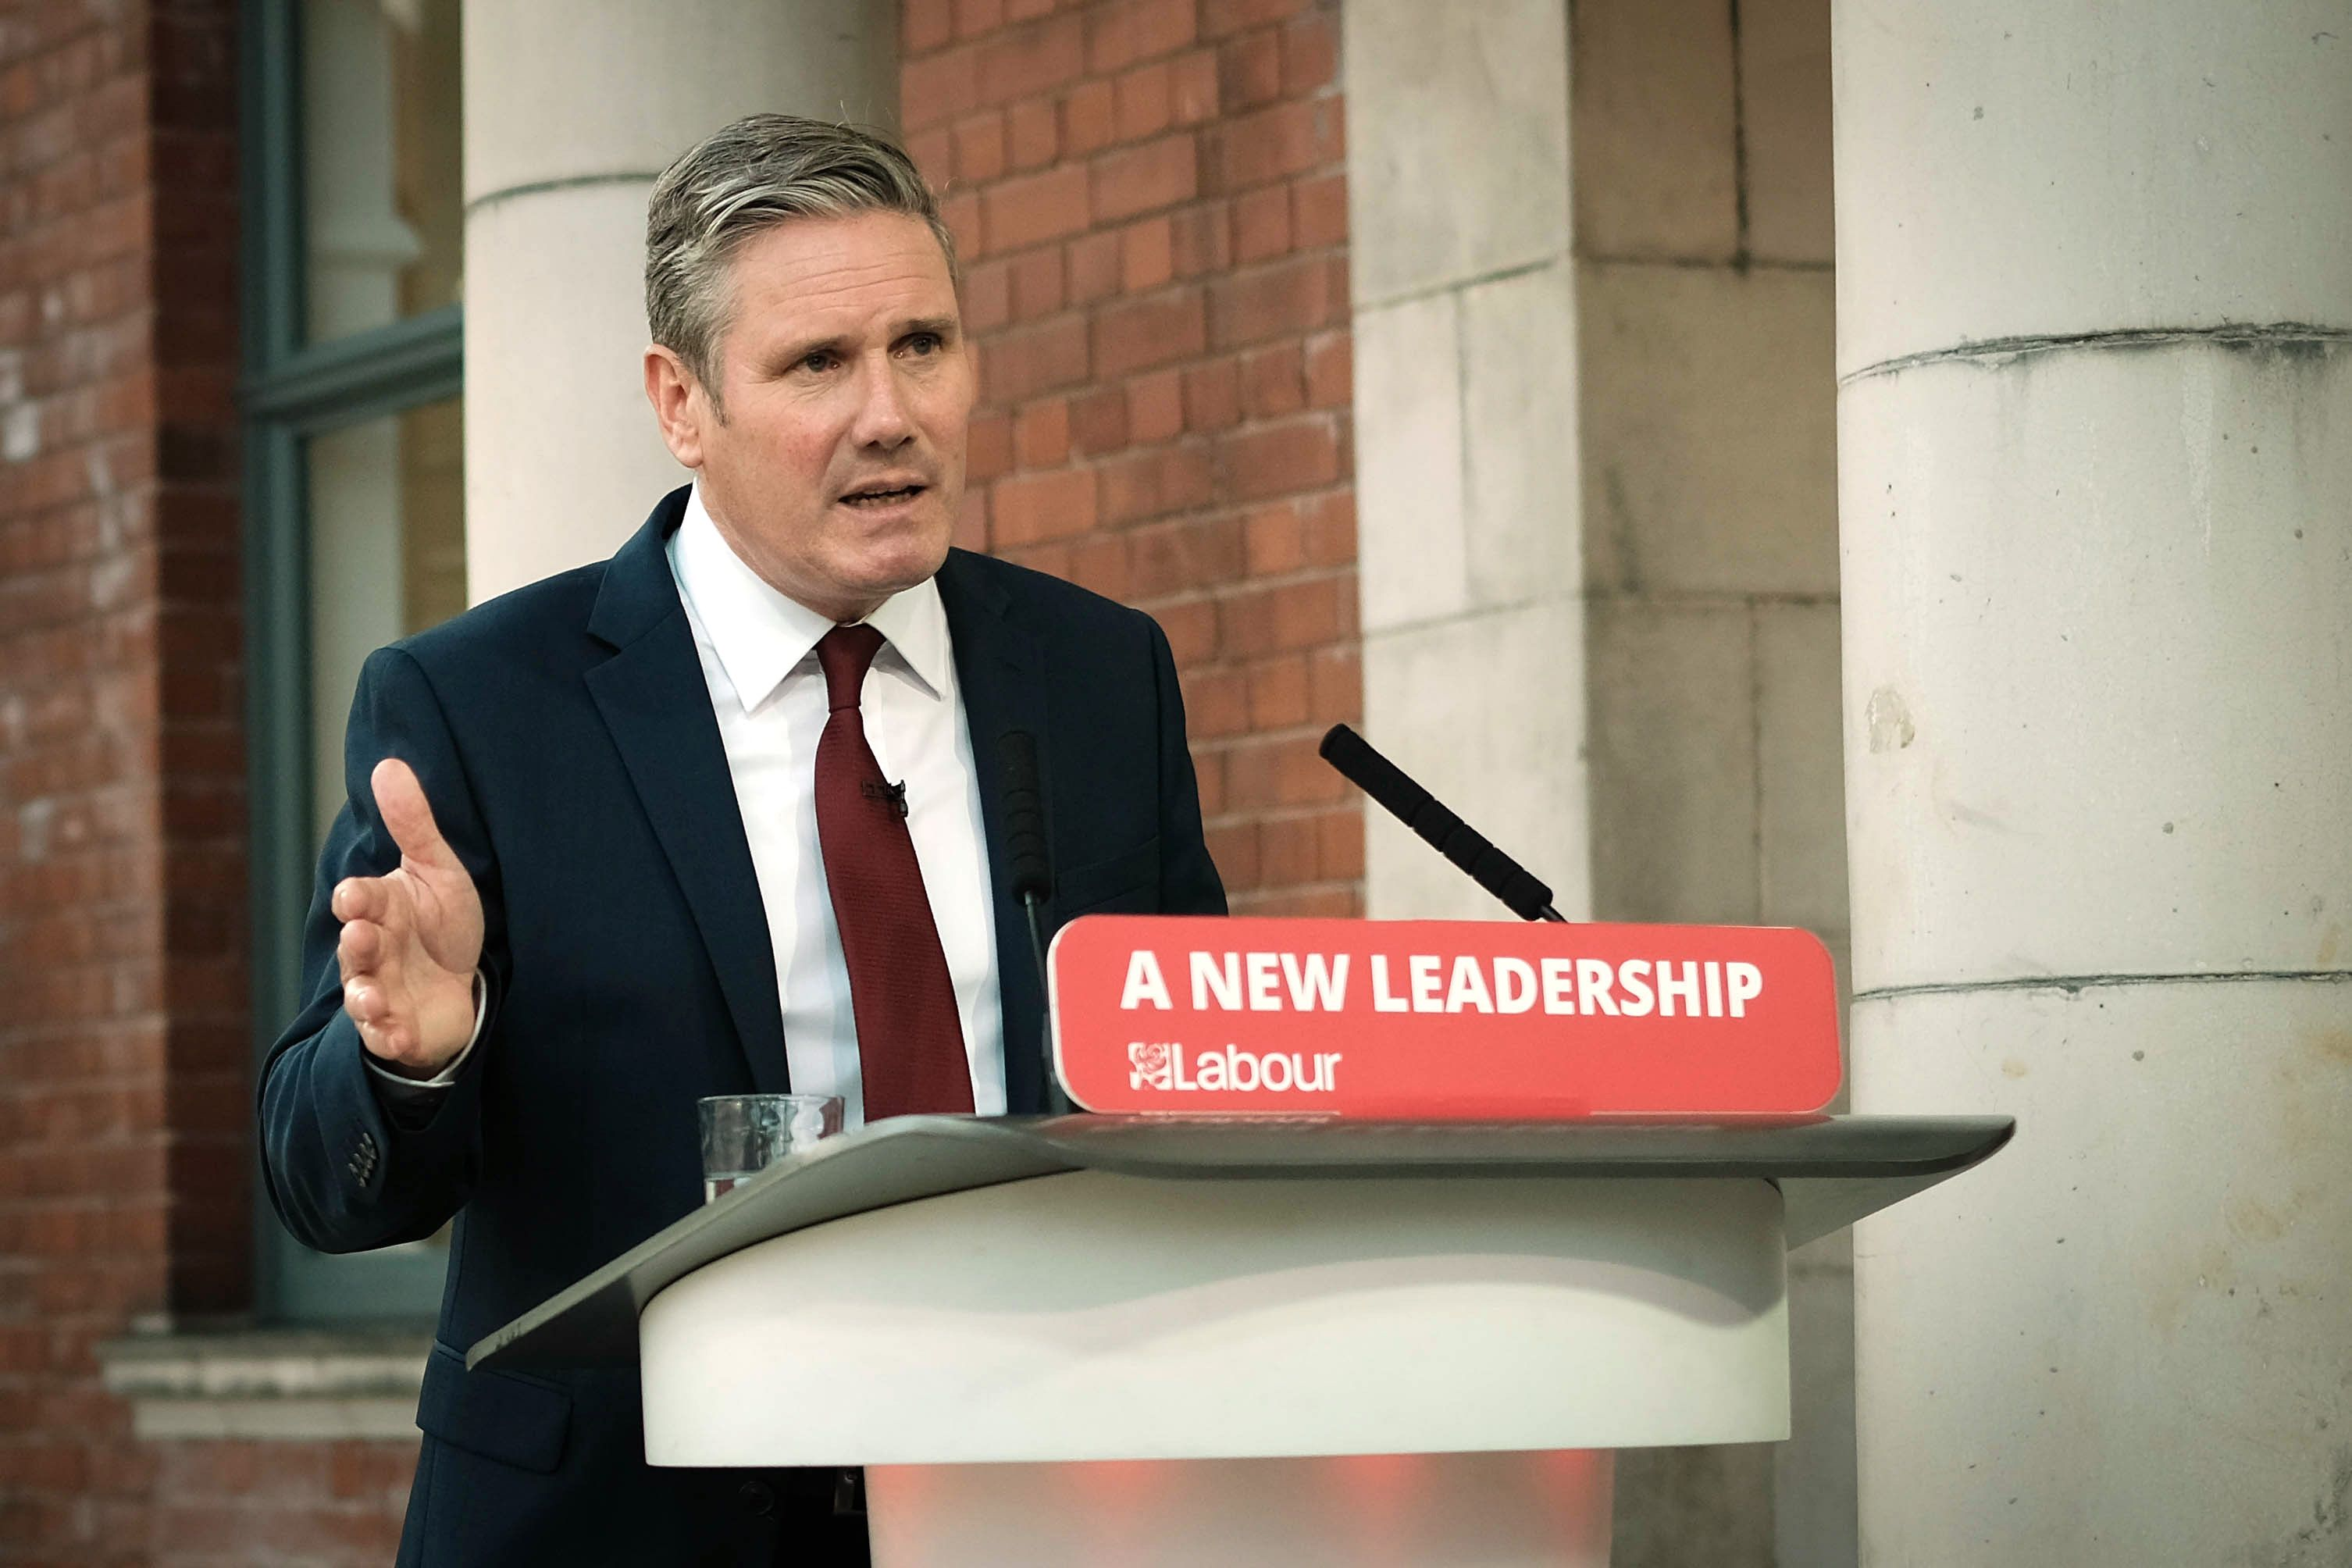 Labour leader Keir Starmer will address the nation tonight - here's how to watch